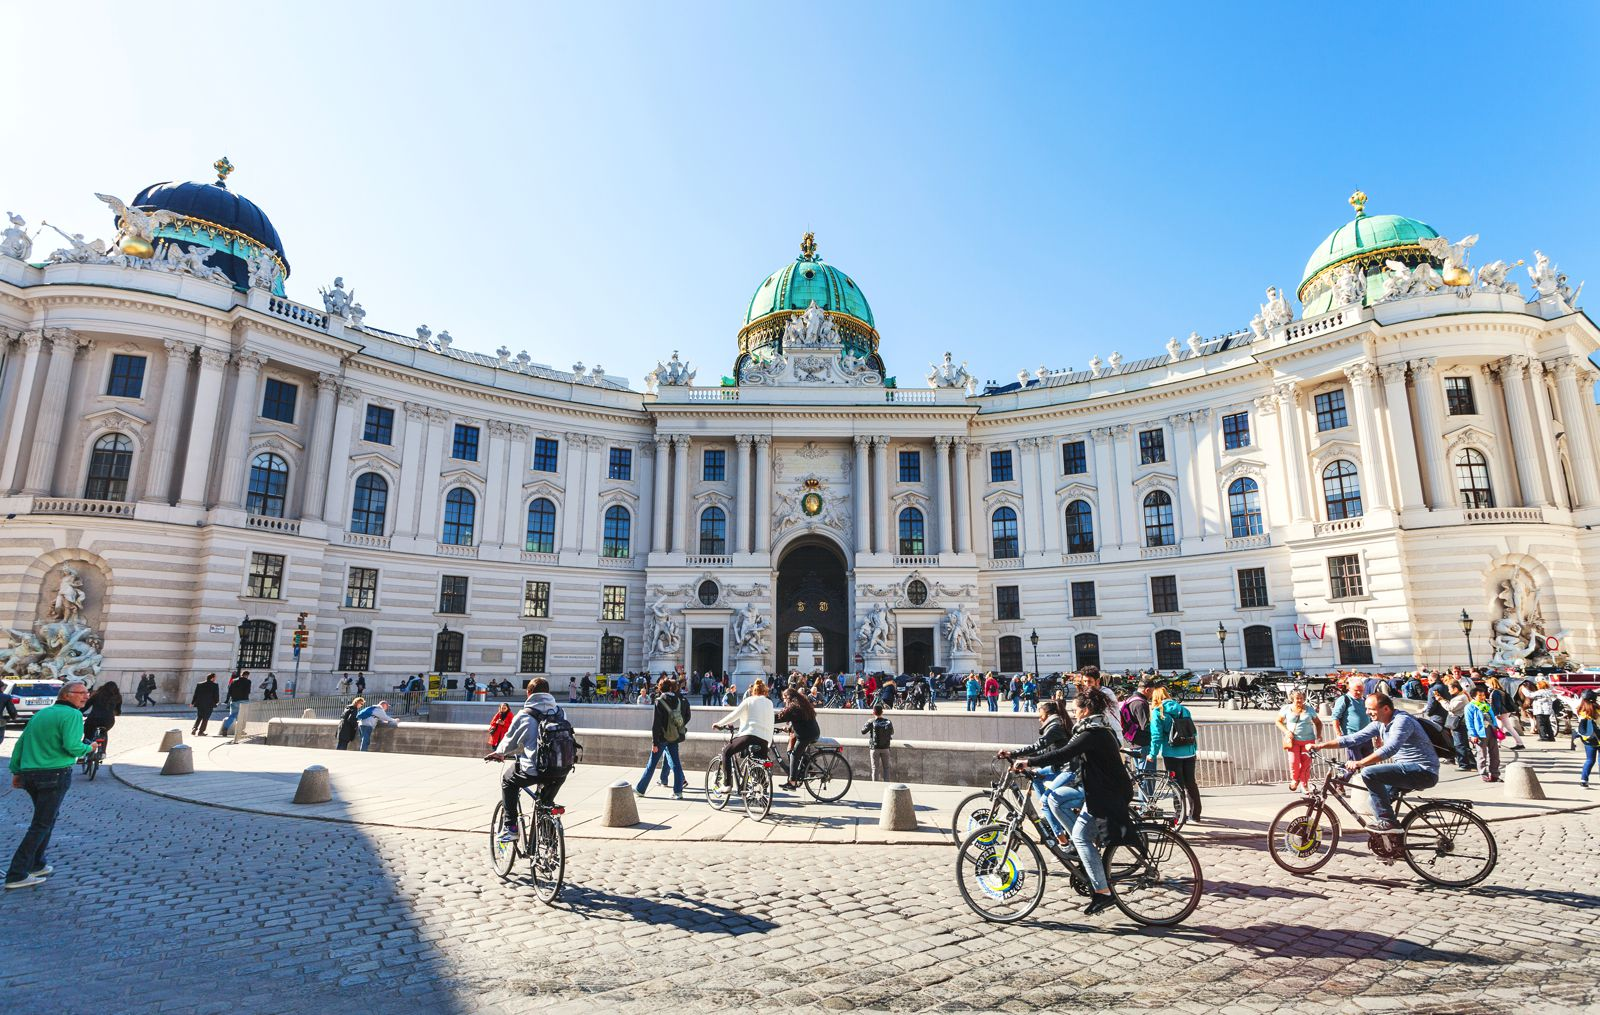 The Best Restaurants, Places And Food To Eat In Vienna - 40 Reader's Recommendations (1)